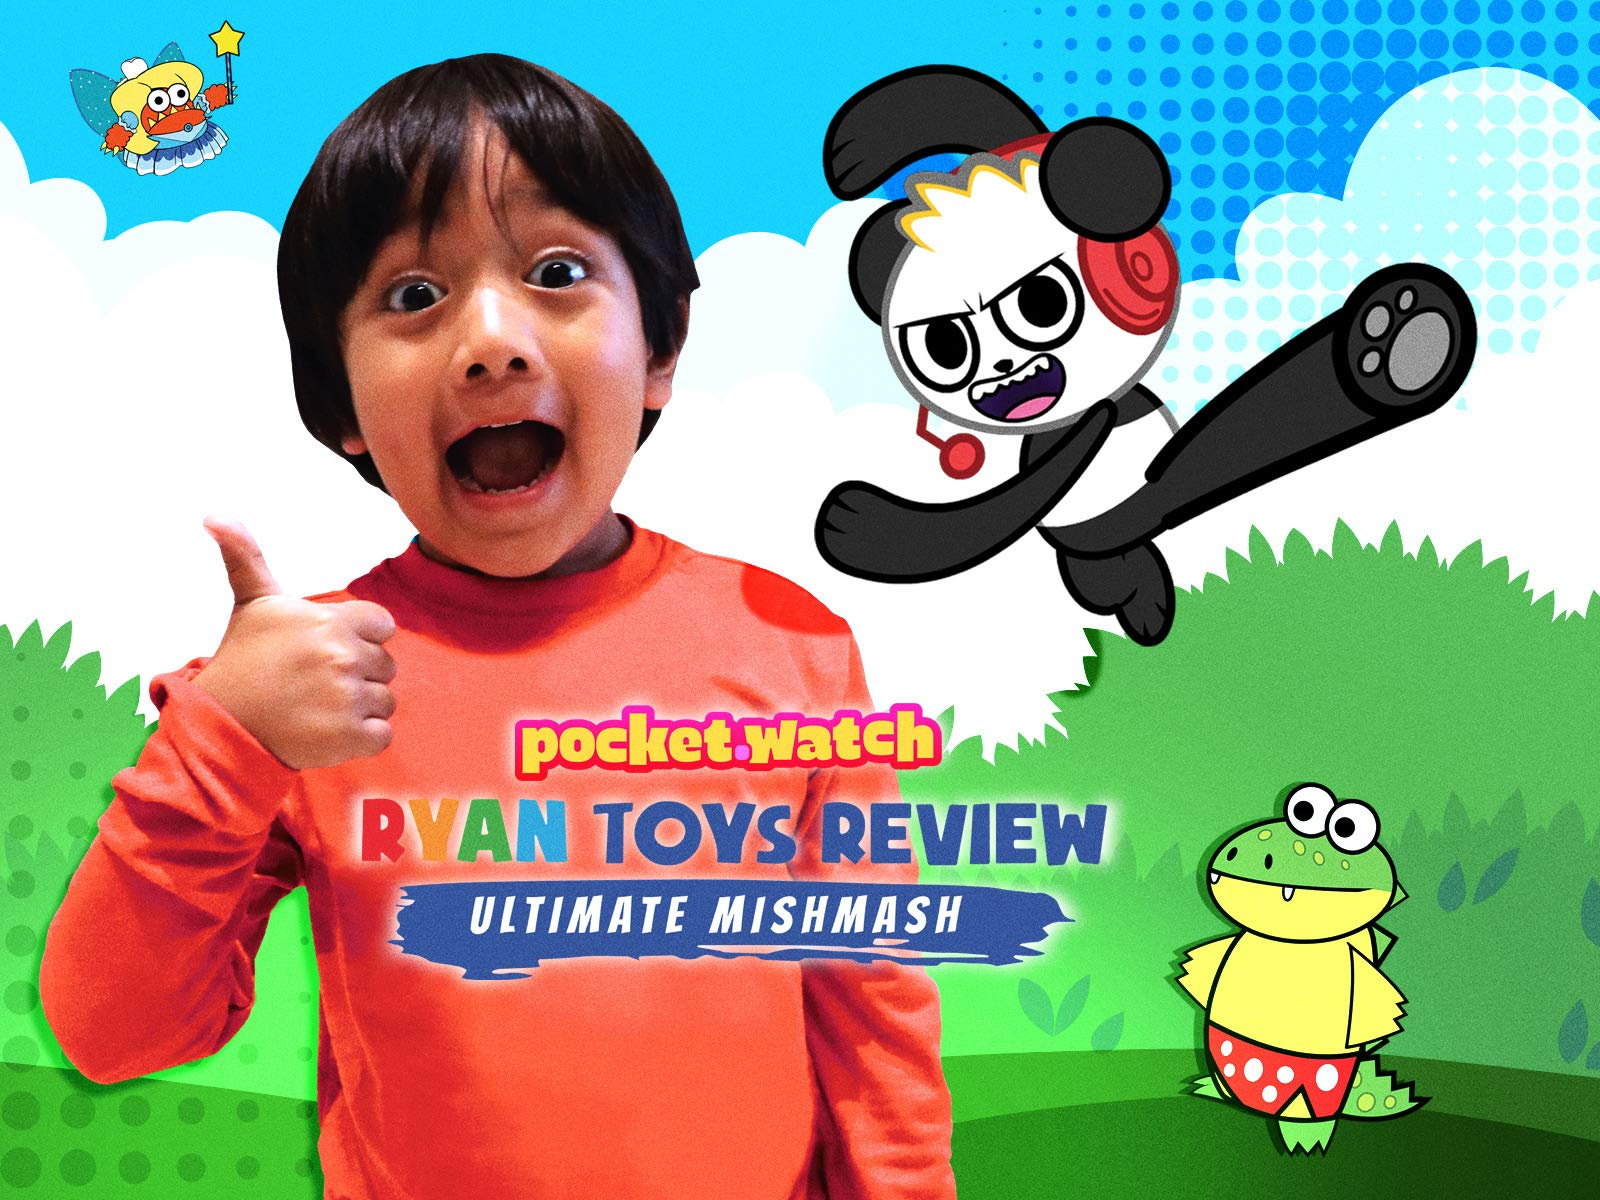 pocket toys review ultimate mishmash on